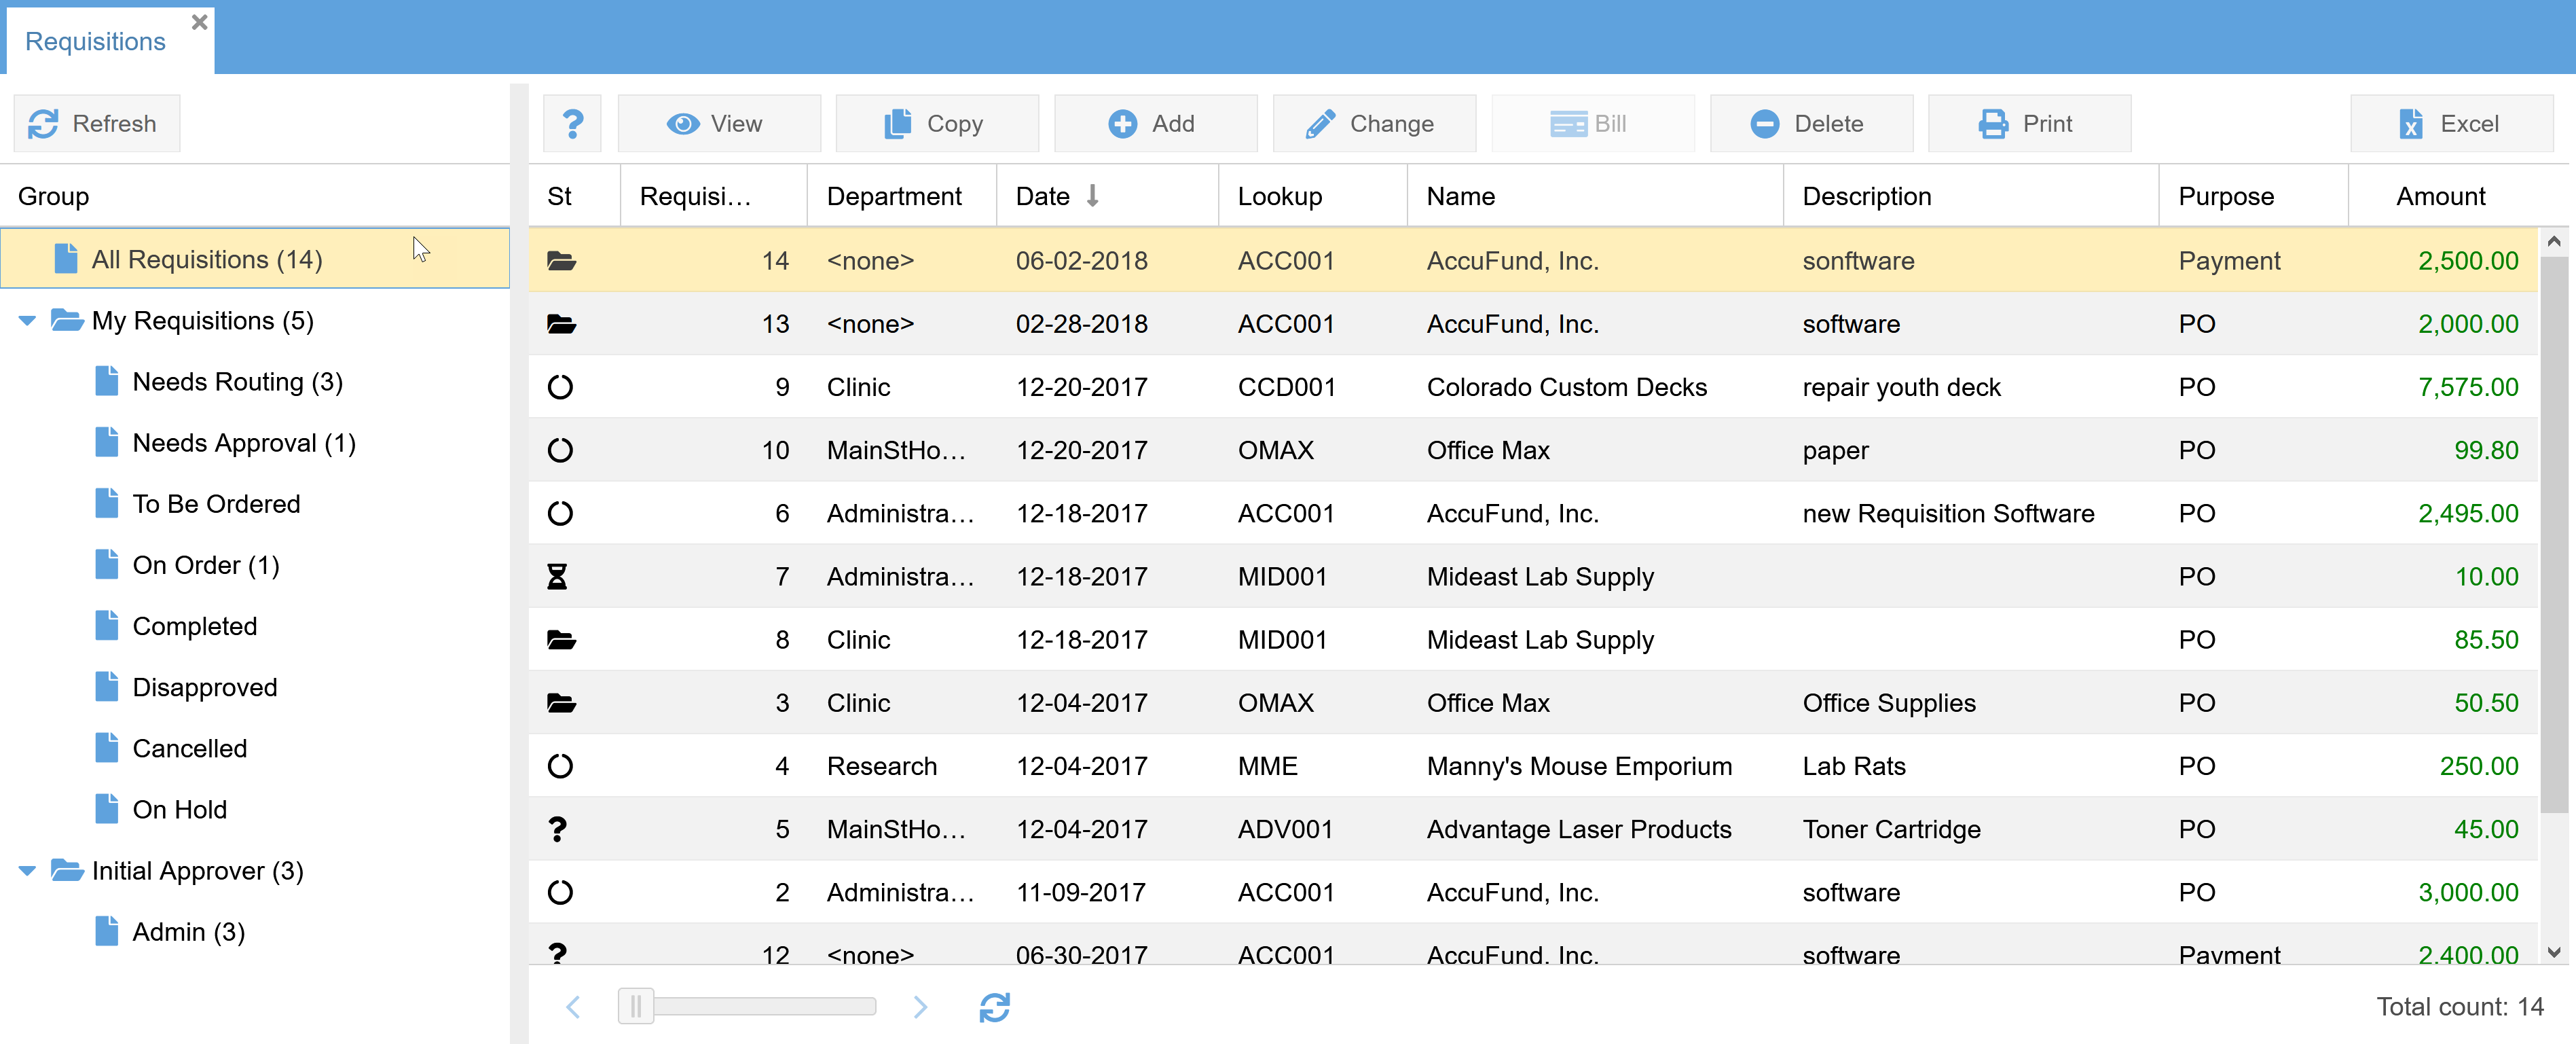 AccuFund Accounting Suite Software - Streamline your Purchase Order & Payment Request Processes. AccuFund makes it easy to track requisitions through multiple approval stages. All activity is date- and user-stamped for convenient status updates and reporting.